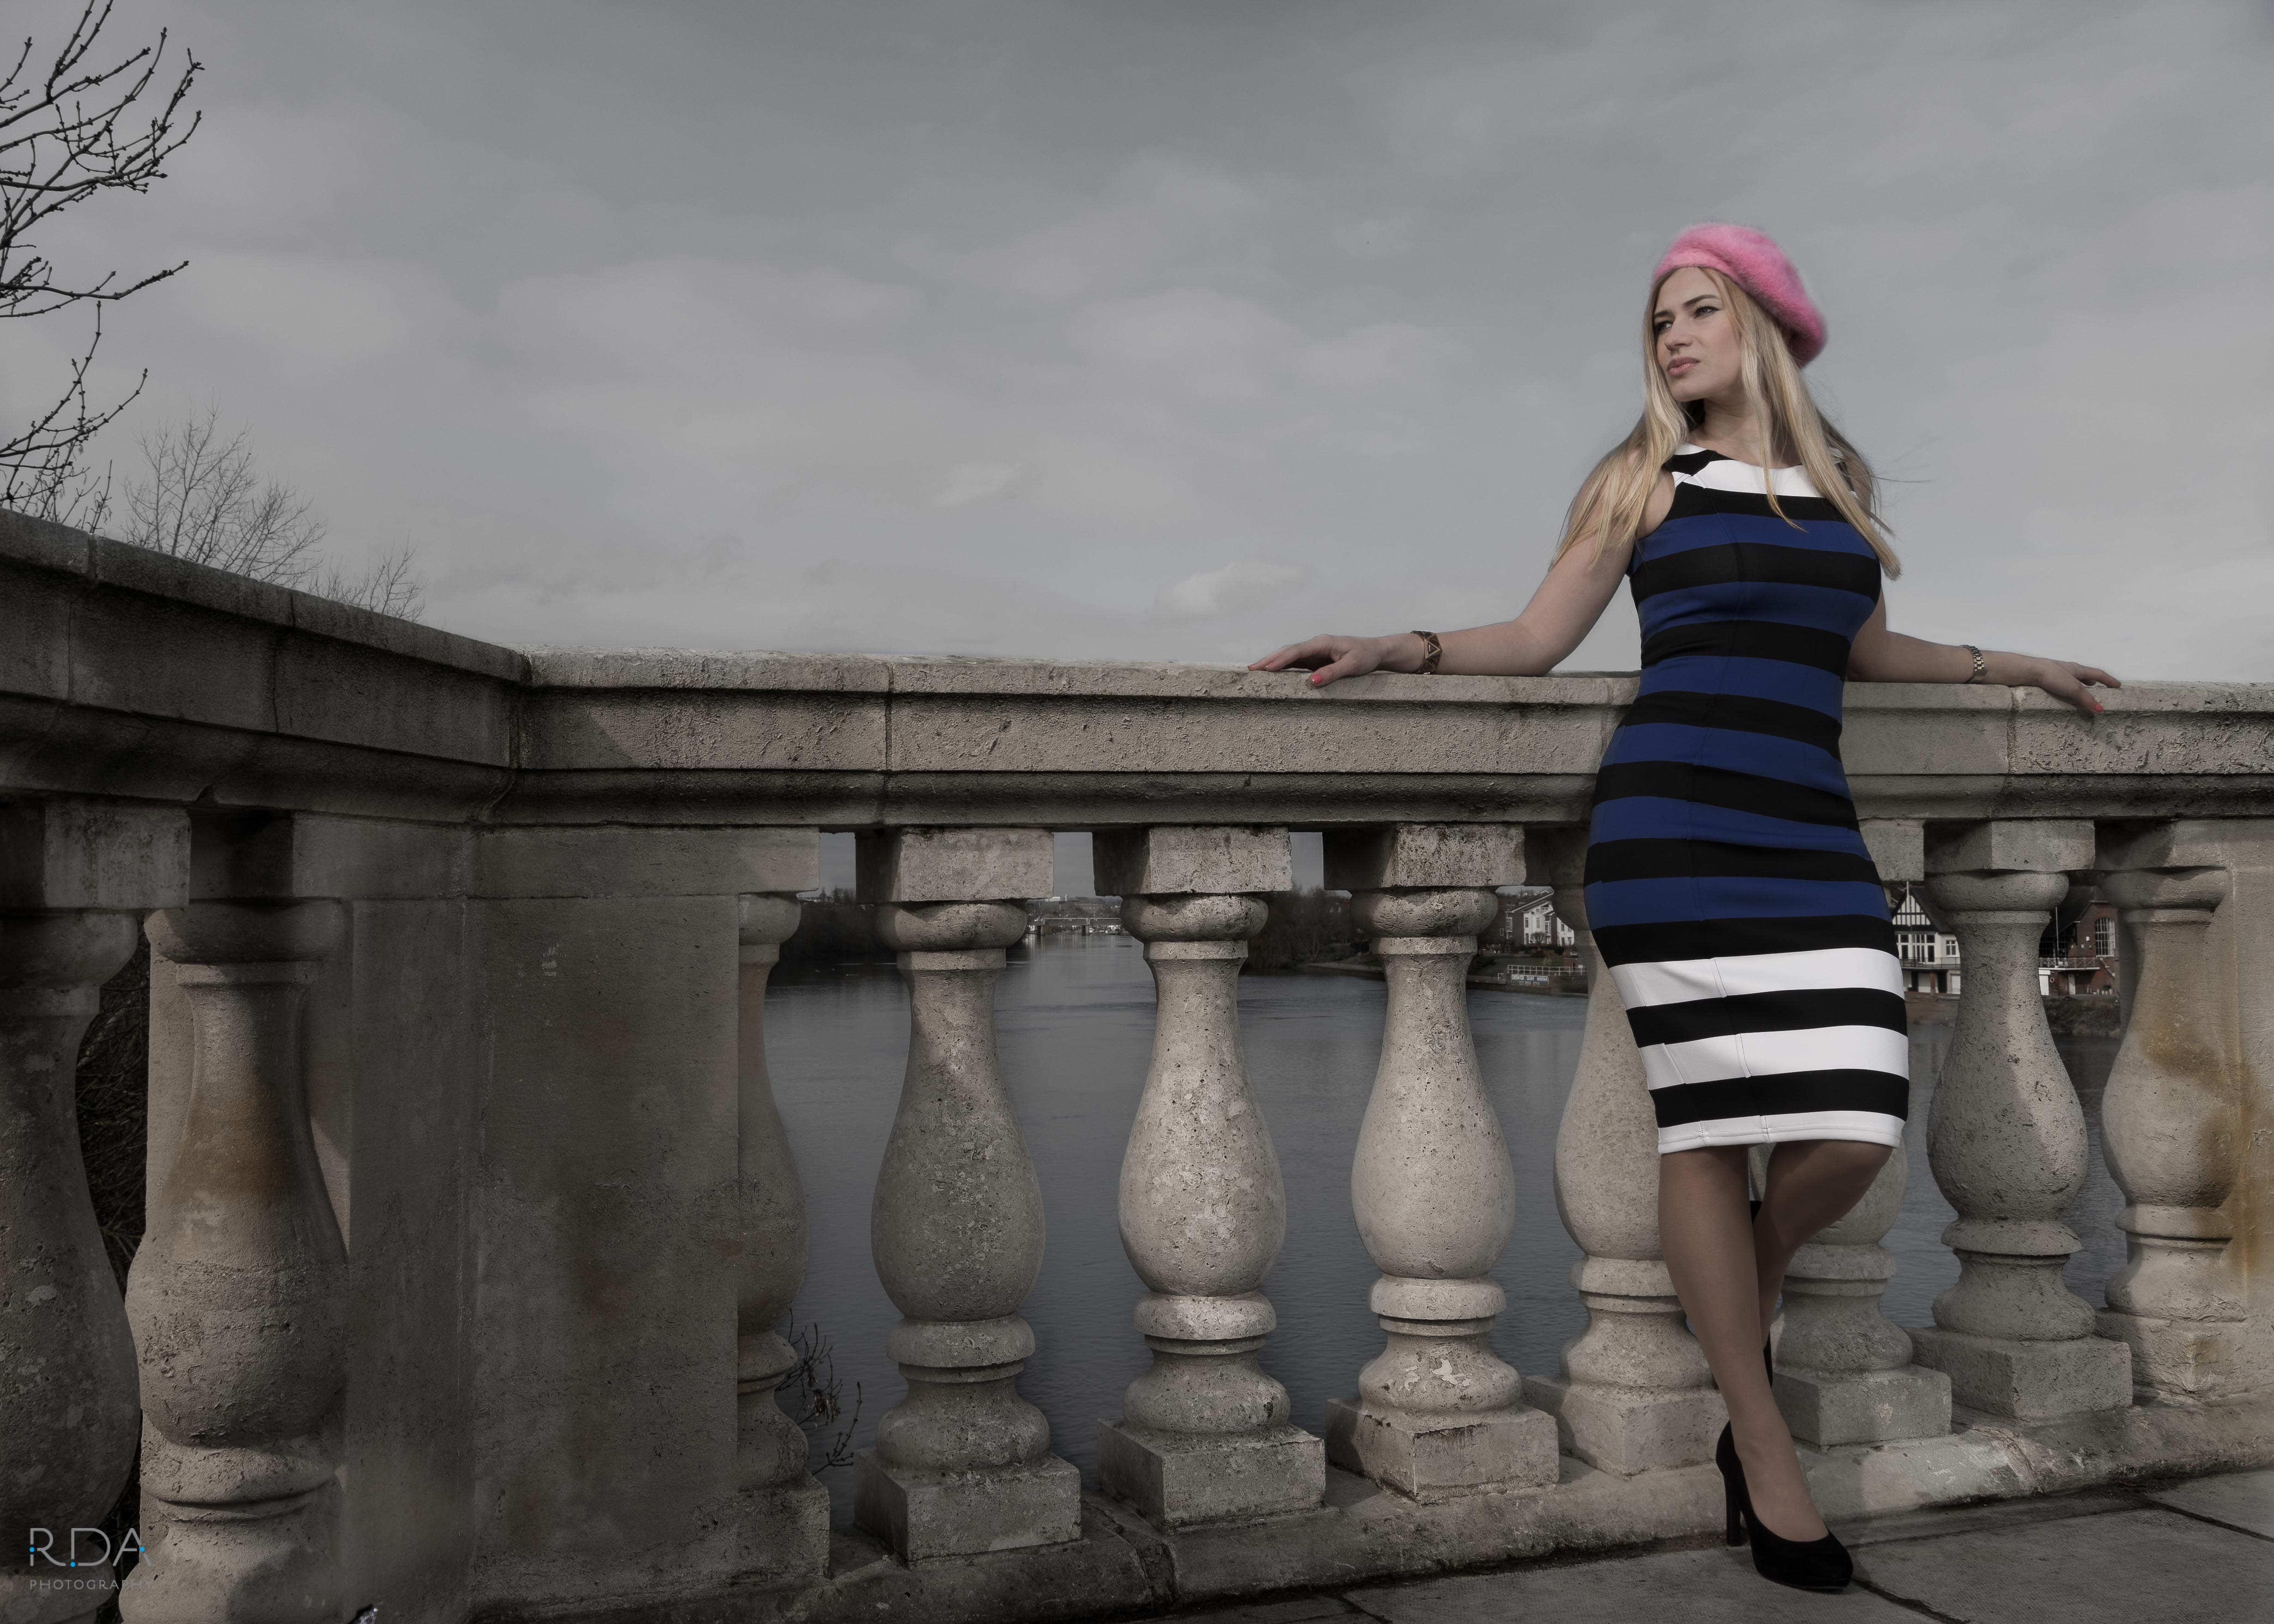 Model shoot on Chiswick Bridge with RDA PHOTOGRAPHY